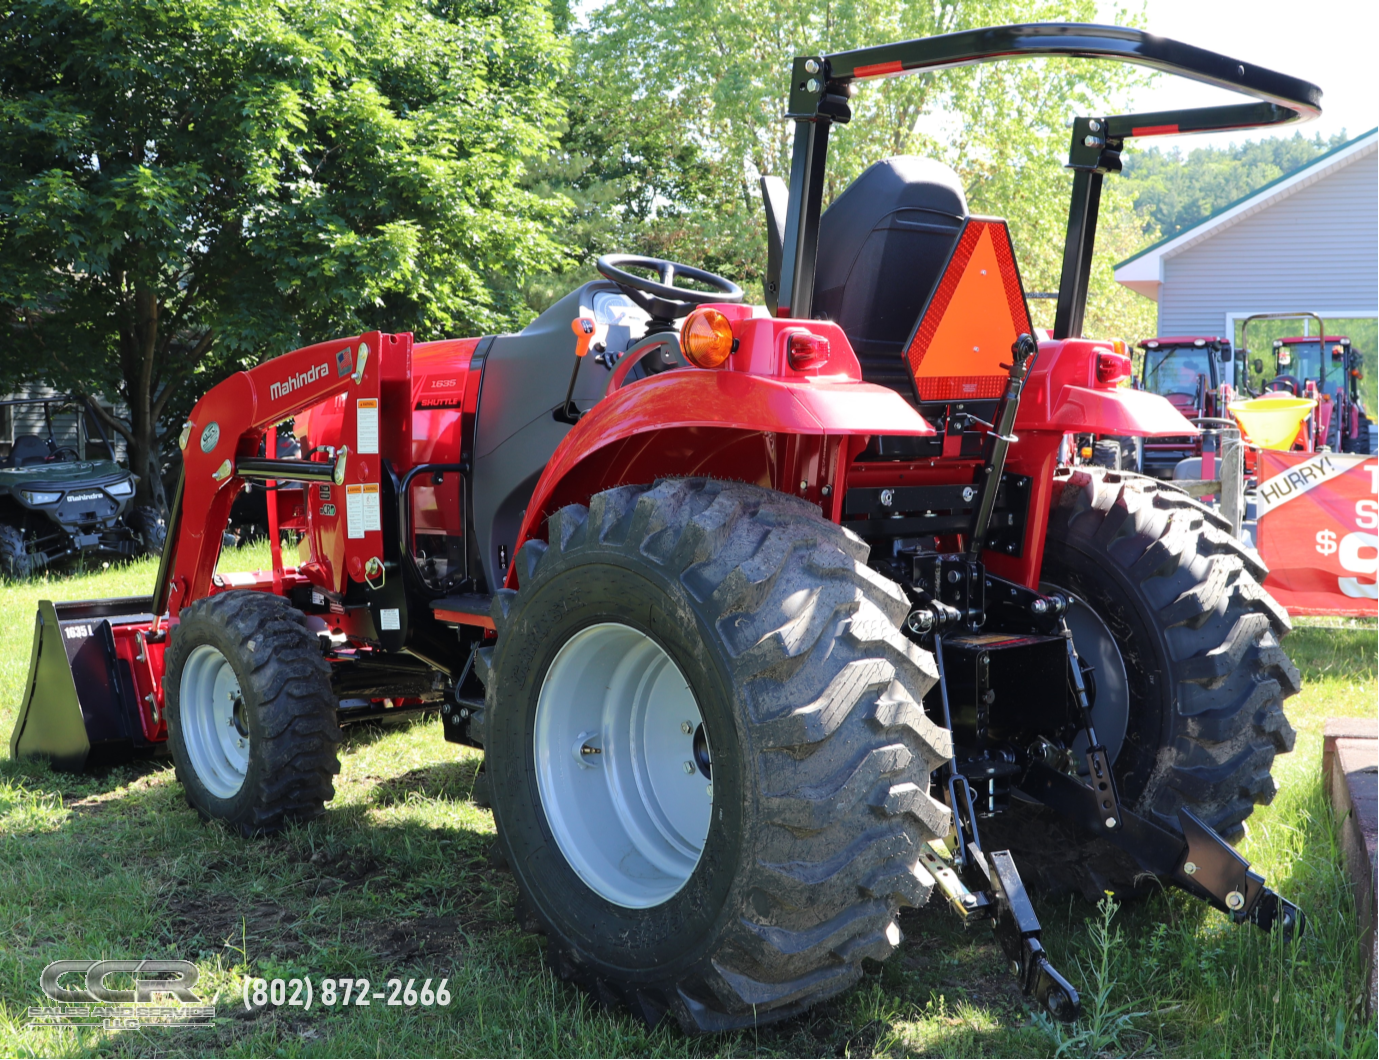 2019 Mahindra 1635 Shuttle OS for sale in Essex, VT  Essex